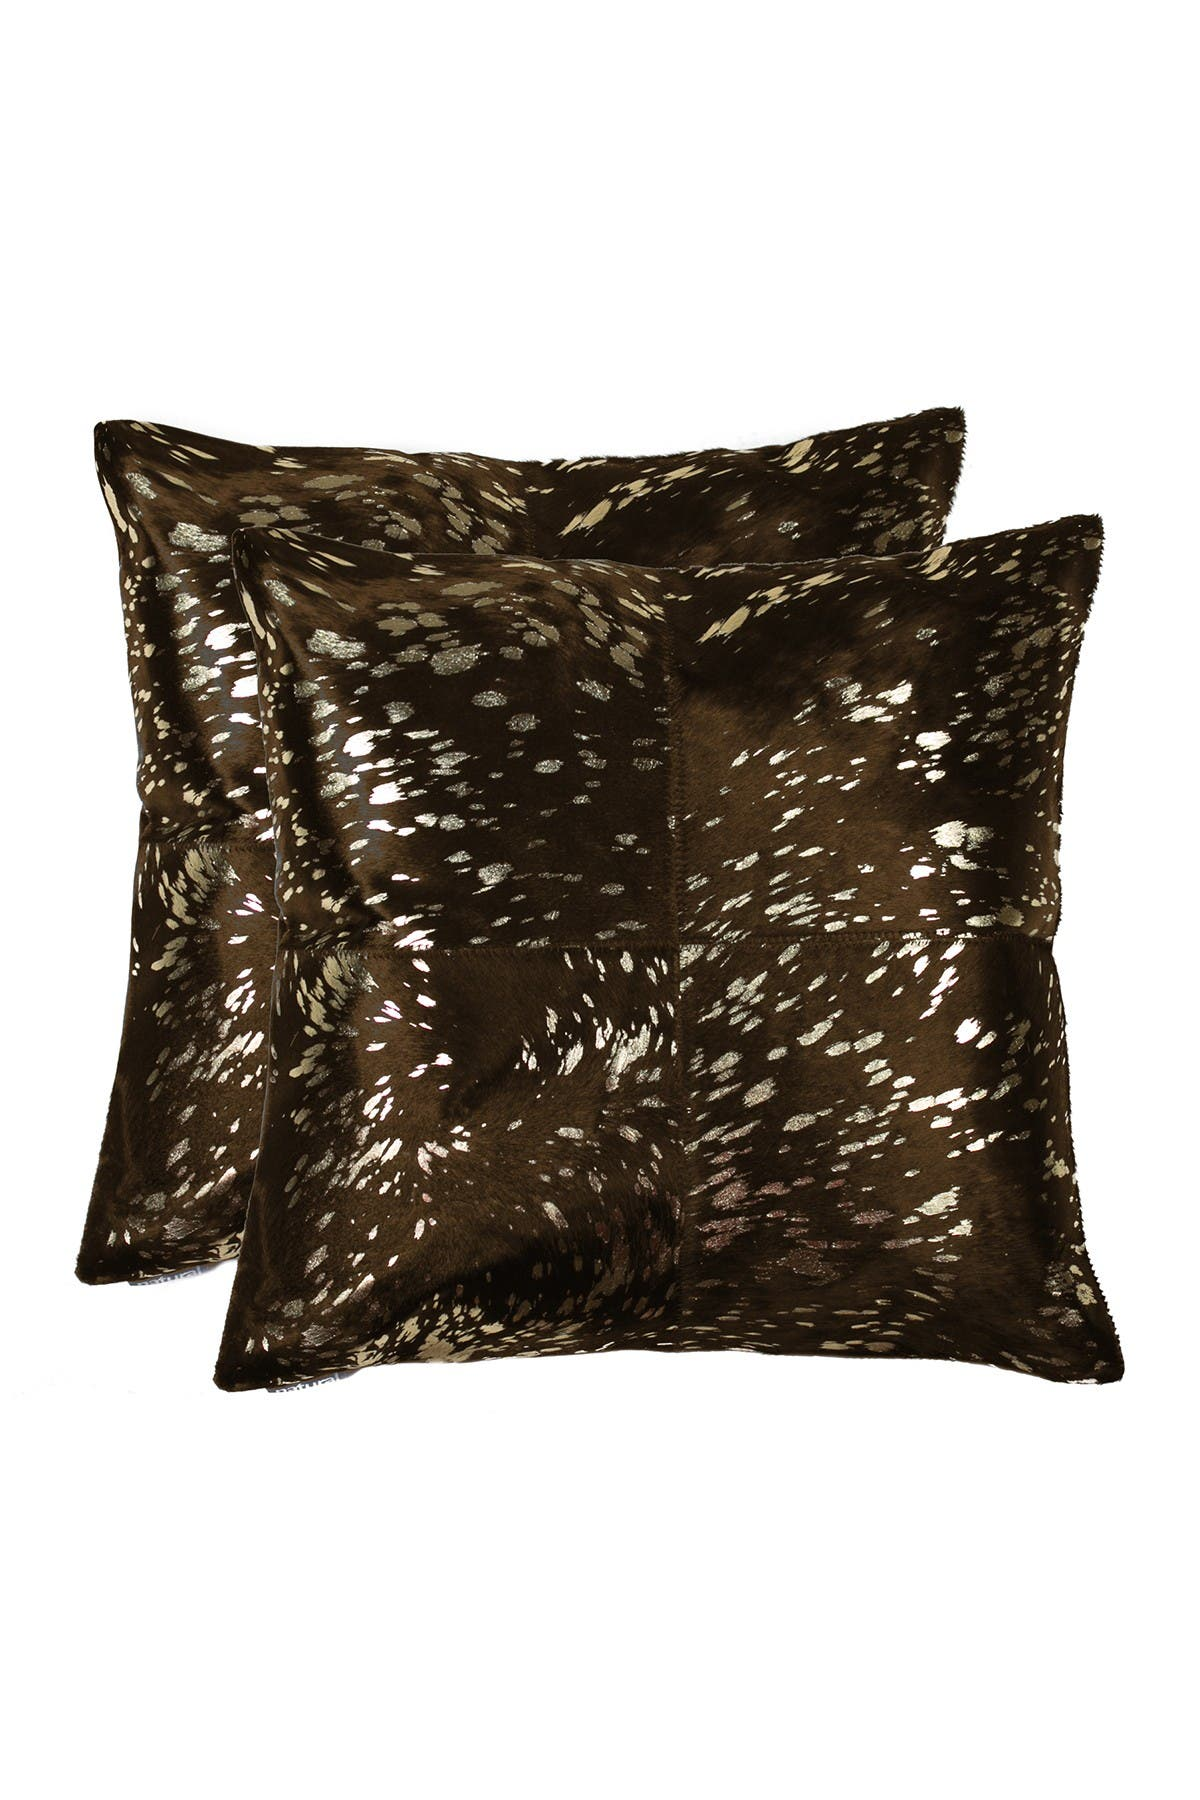 "Image of Natural Torino Quattro Genuine Cowhide 18"" x 18"" Pillow - Set of 2 - Gold/Chocolate"